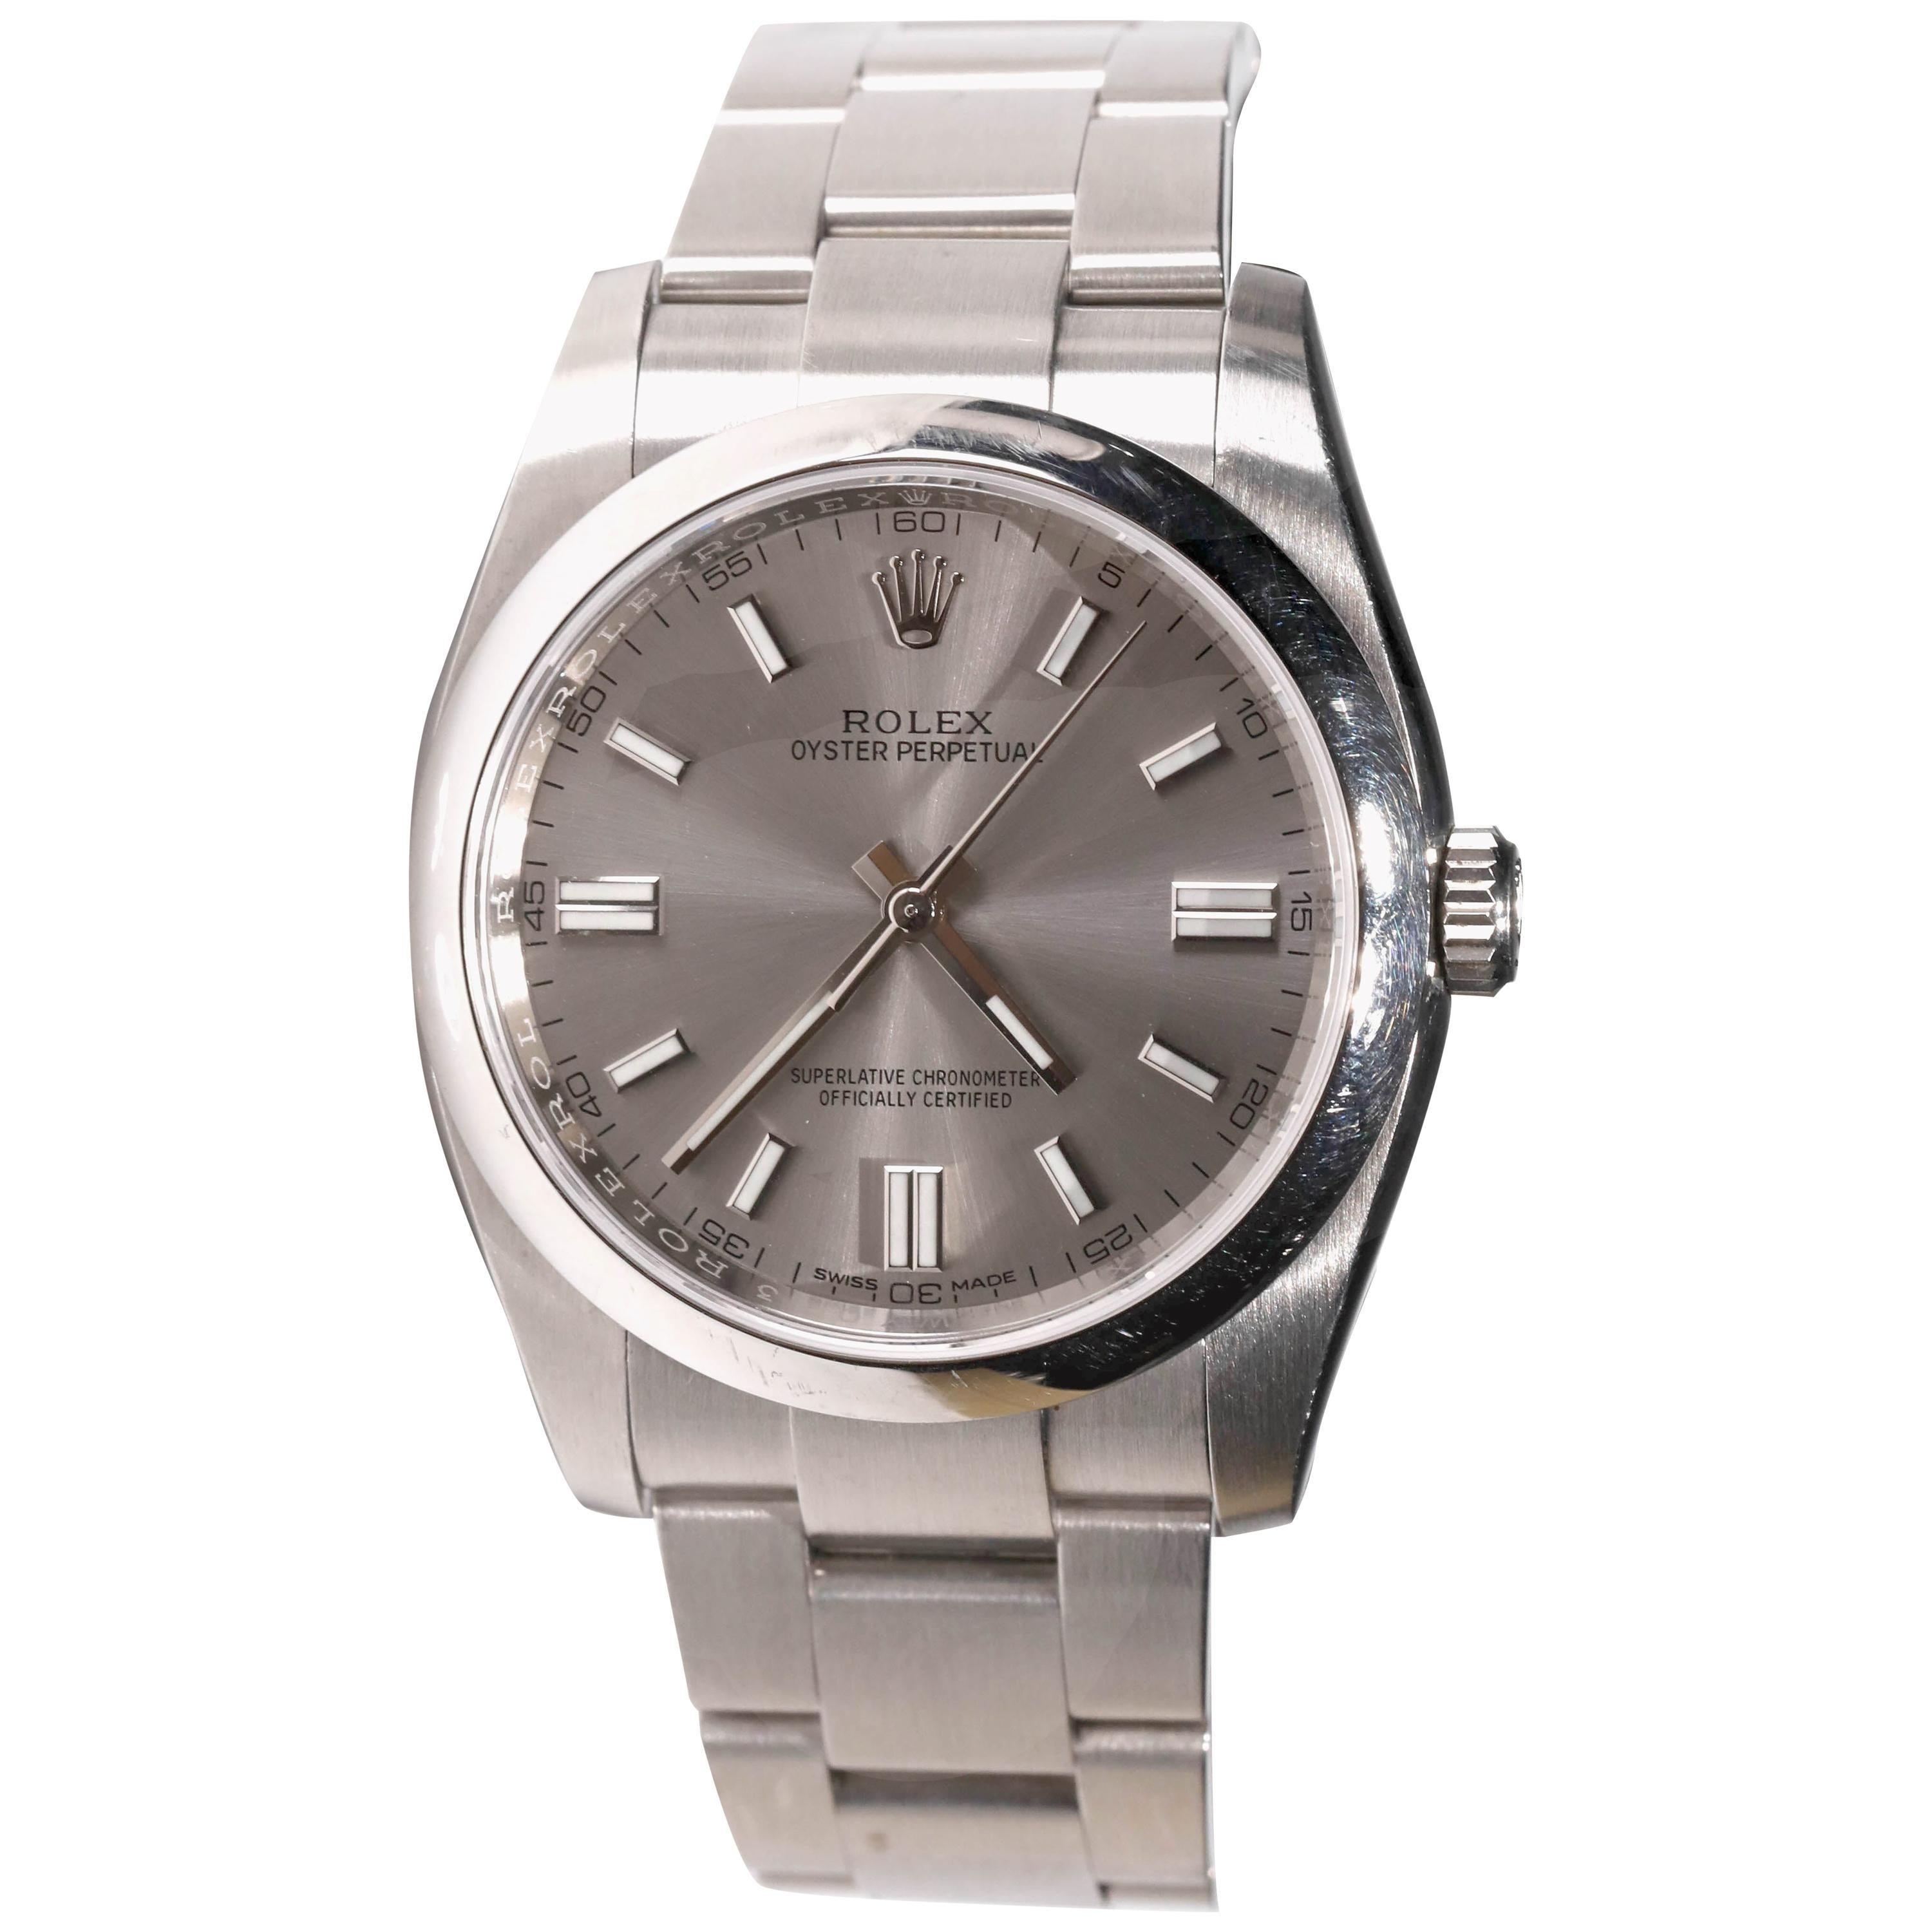 Rolex Men's Oyster Perpetual Stainless Steel Automatic Grey Stick Dial Watch